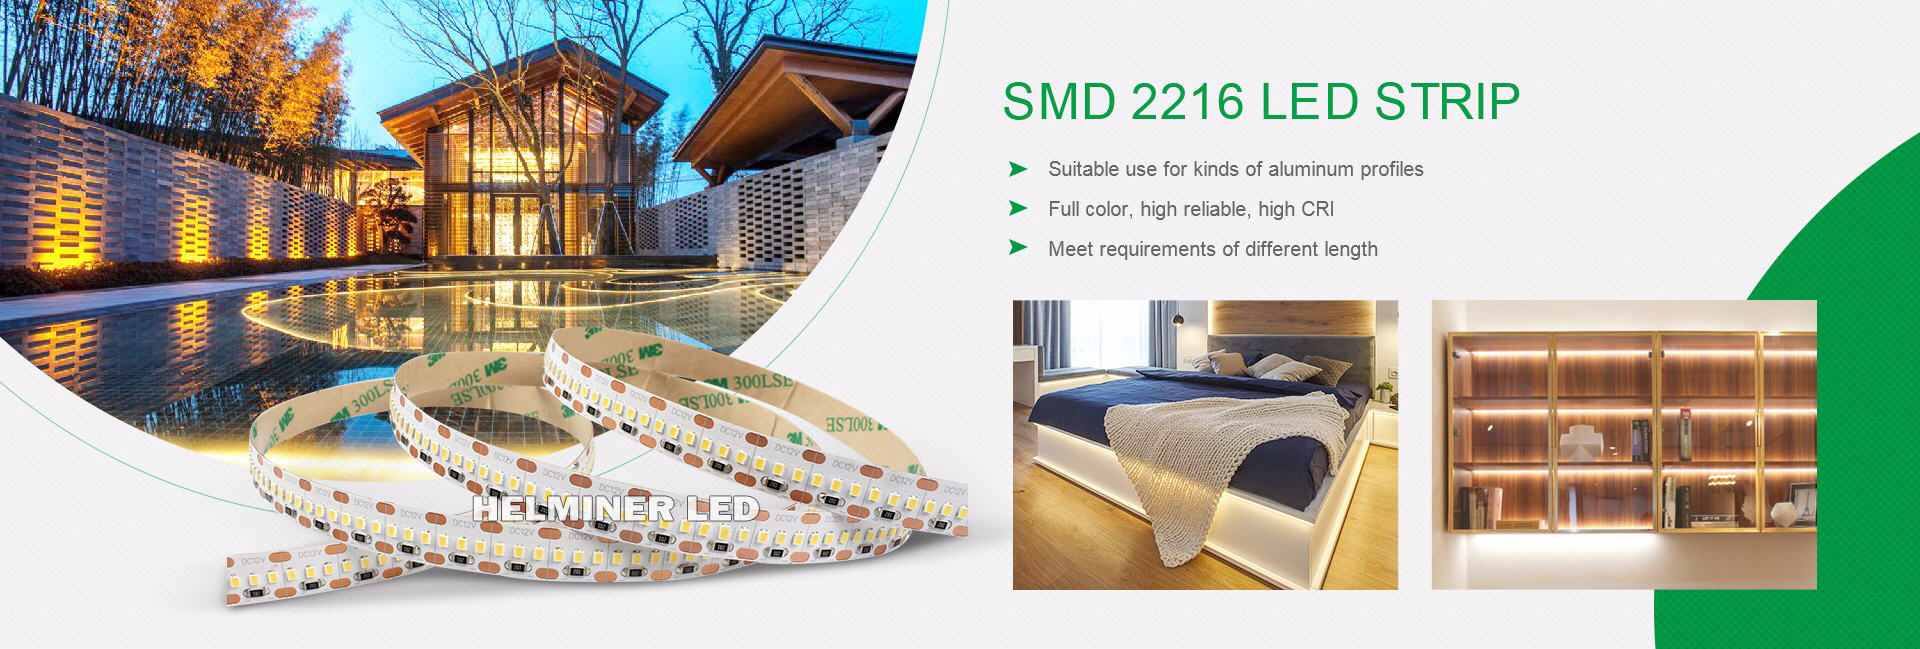 2216 led strip, 2110 led strip, cri90 cri95 cri98 led strip, led for aluminum profile , led light